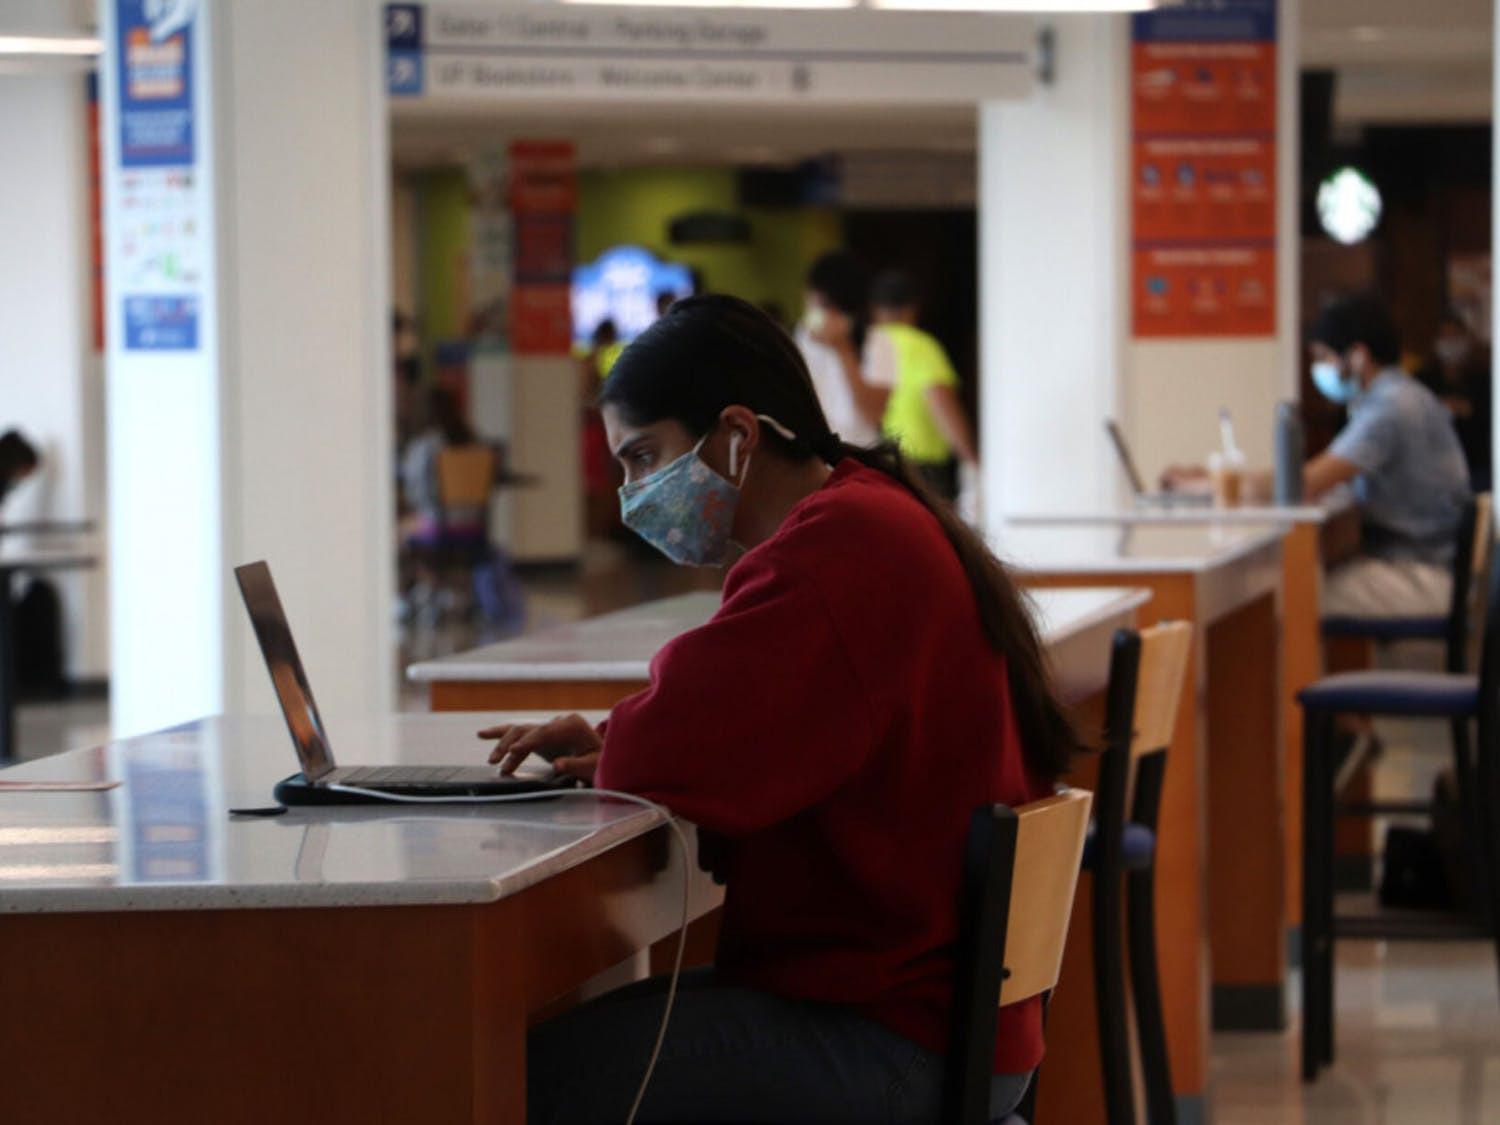 Pia Nair, 19, a UF second-year psychology student, takes a quiz in the Reitz Student Union on Thursday, Sept. 17, 2020.